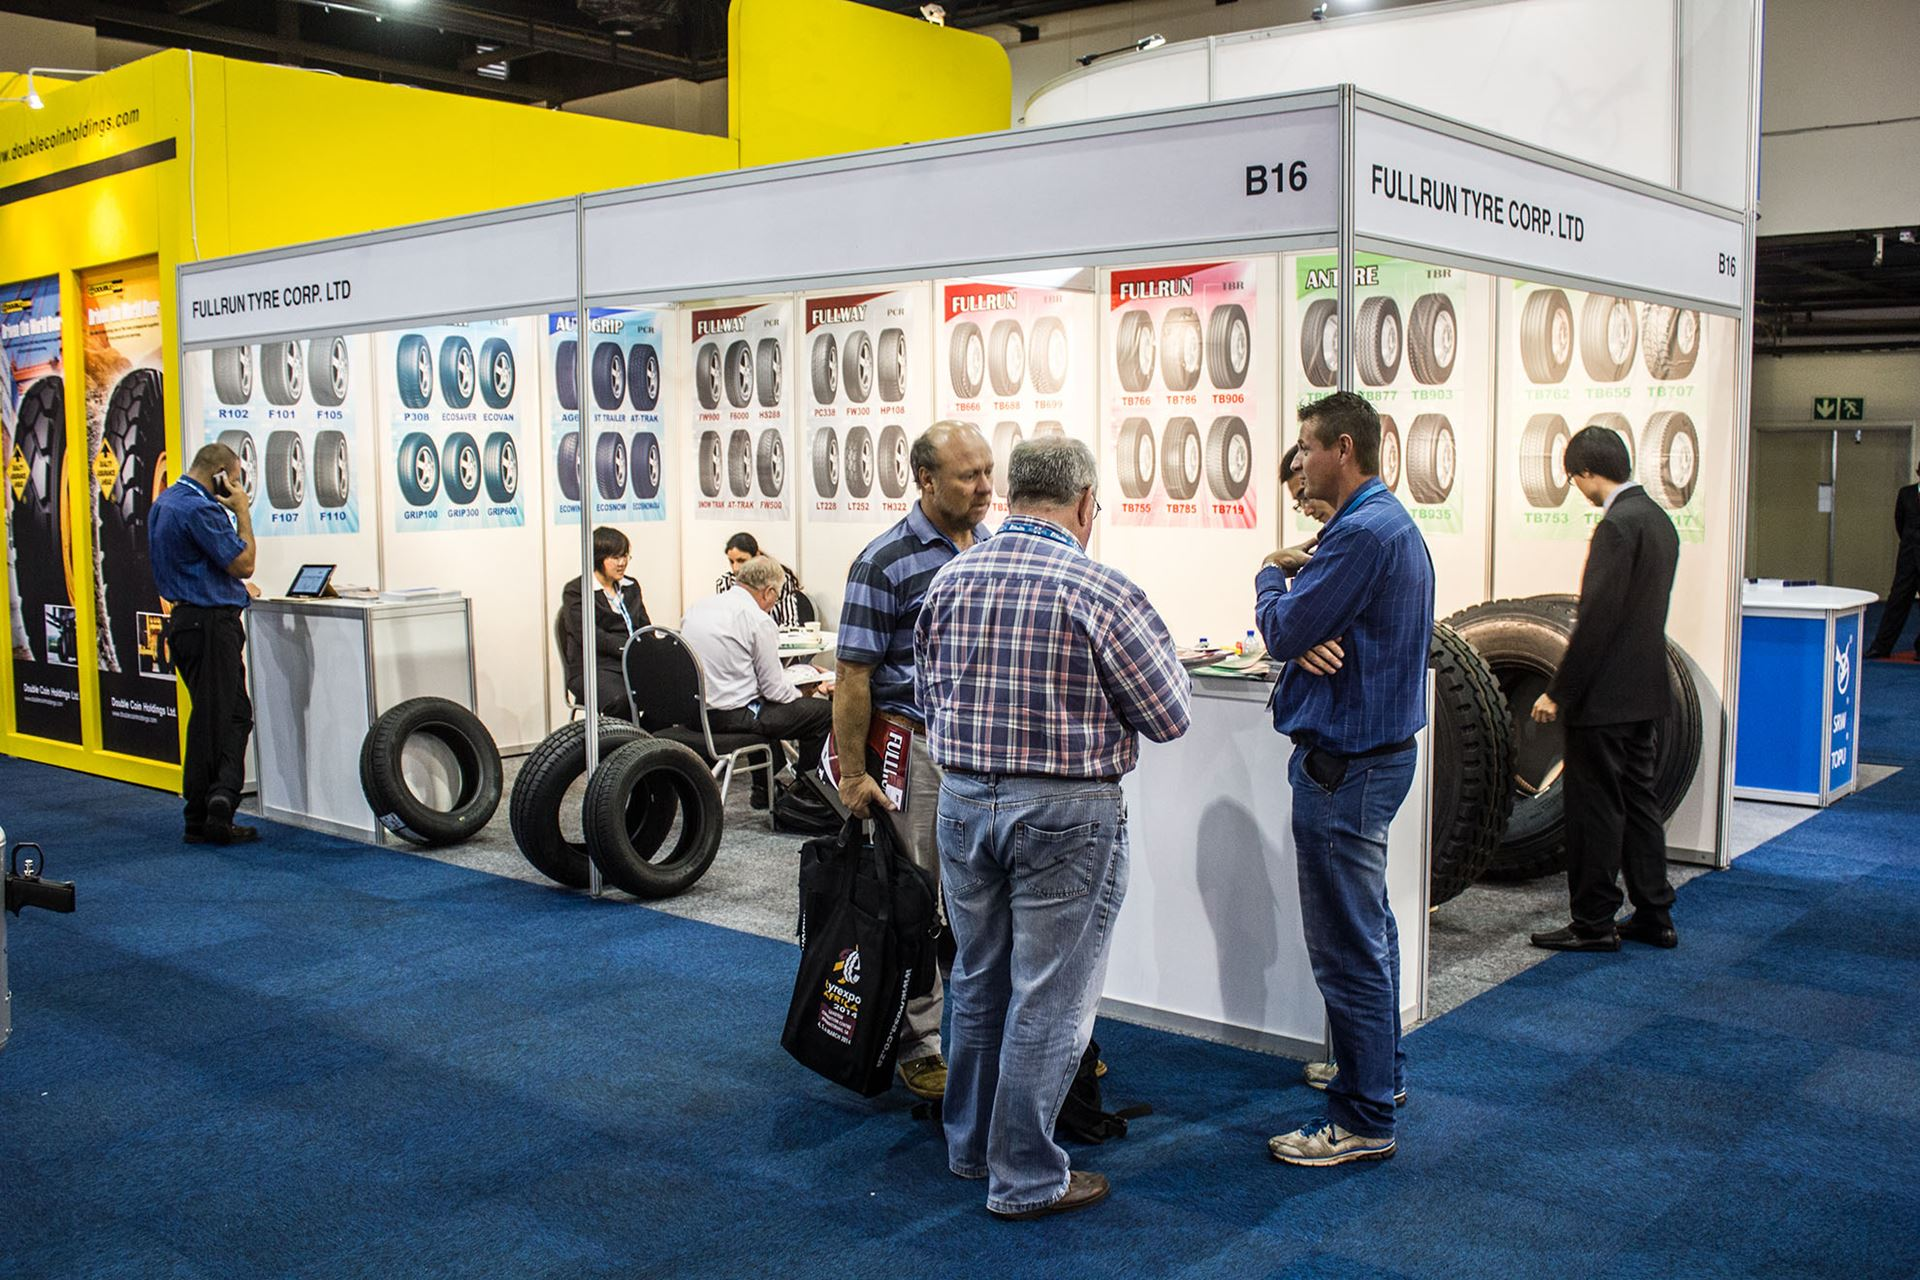 Tyre-Expo-South-Africa-2014-fullrun-Tyre